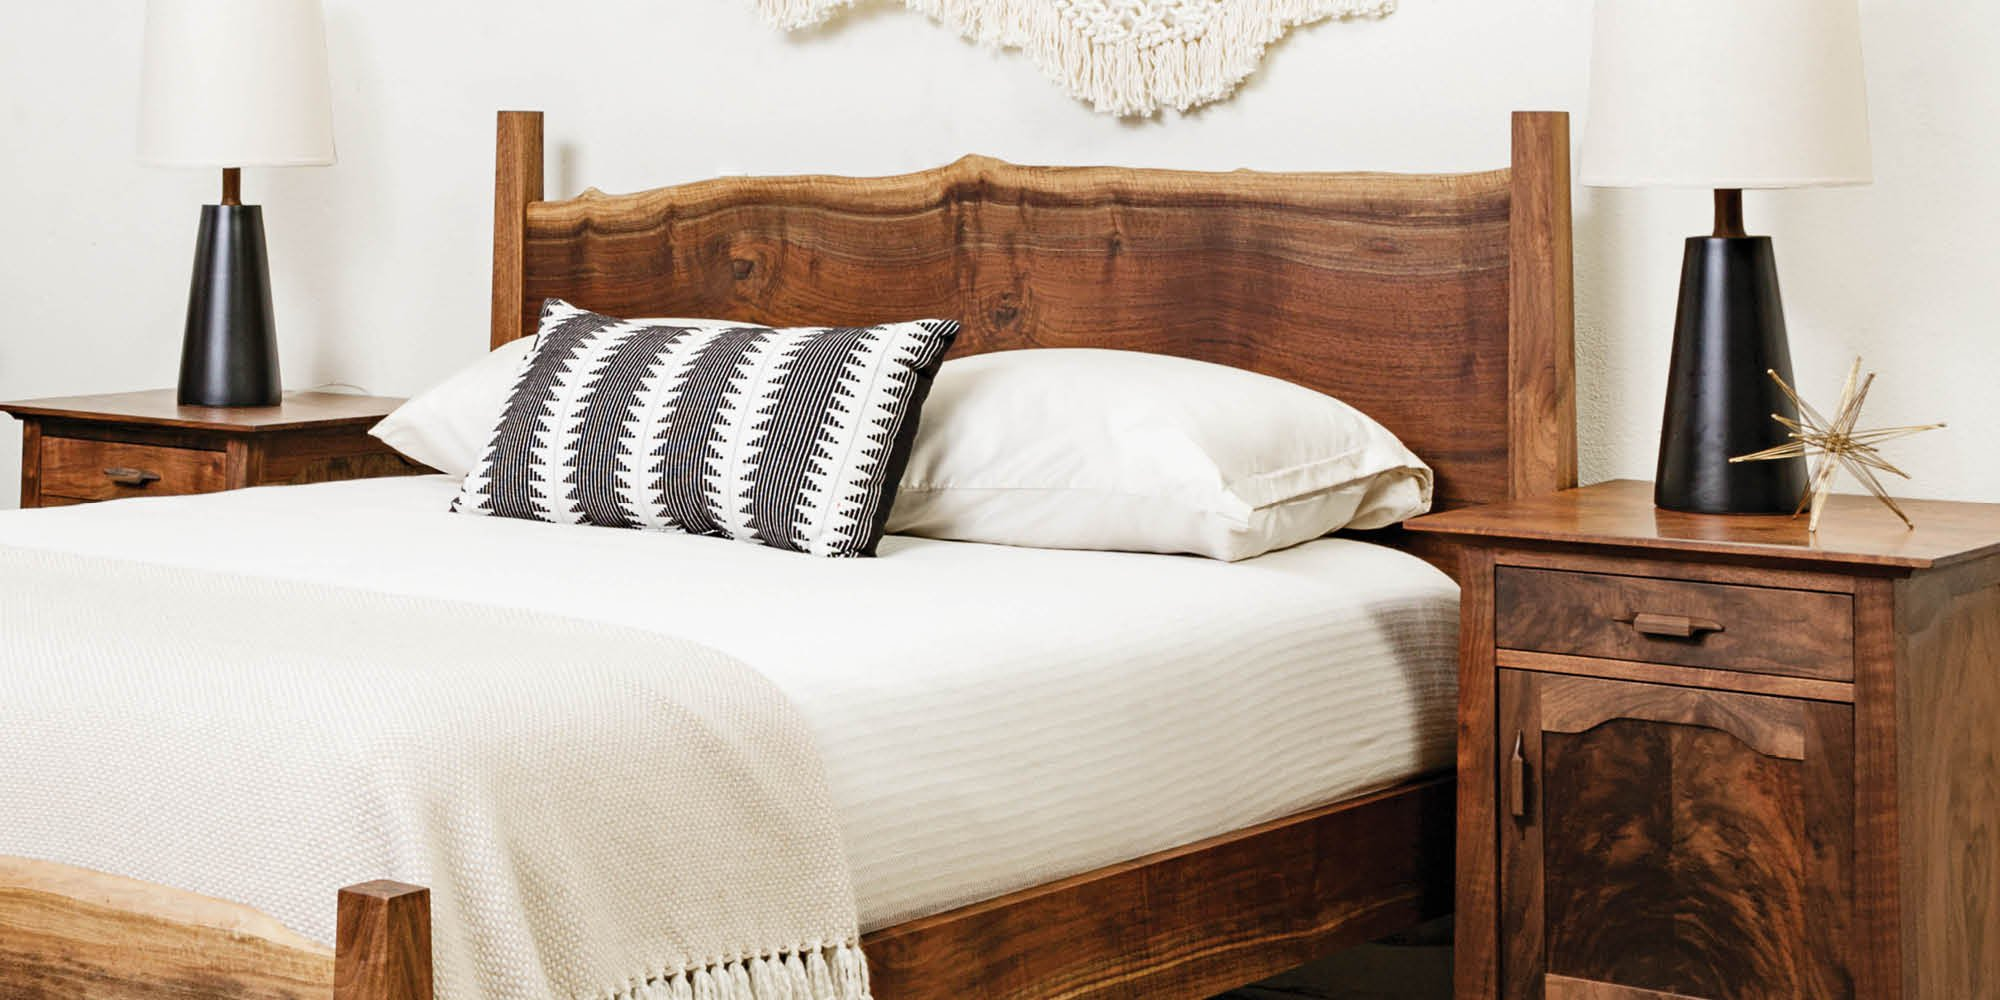 Live-edge Bed made in Oregon